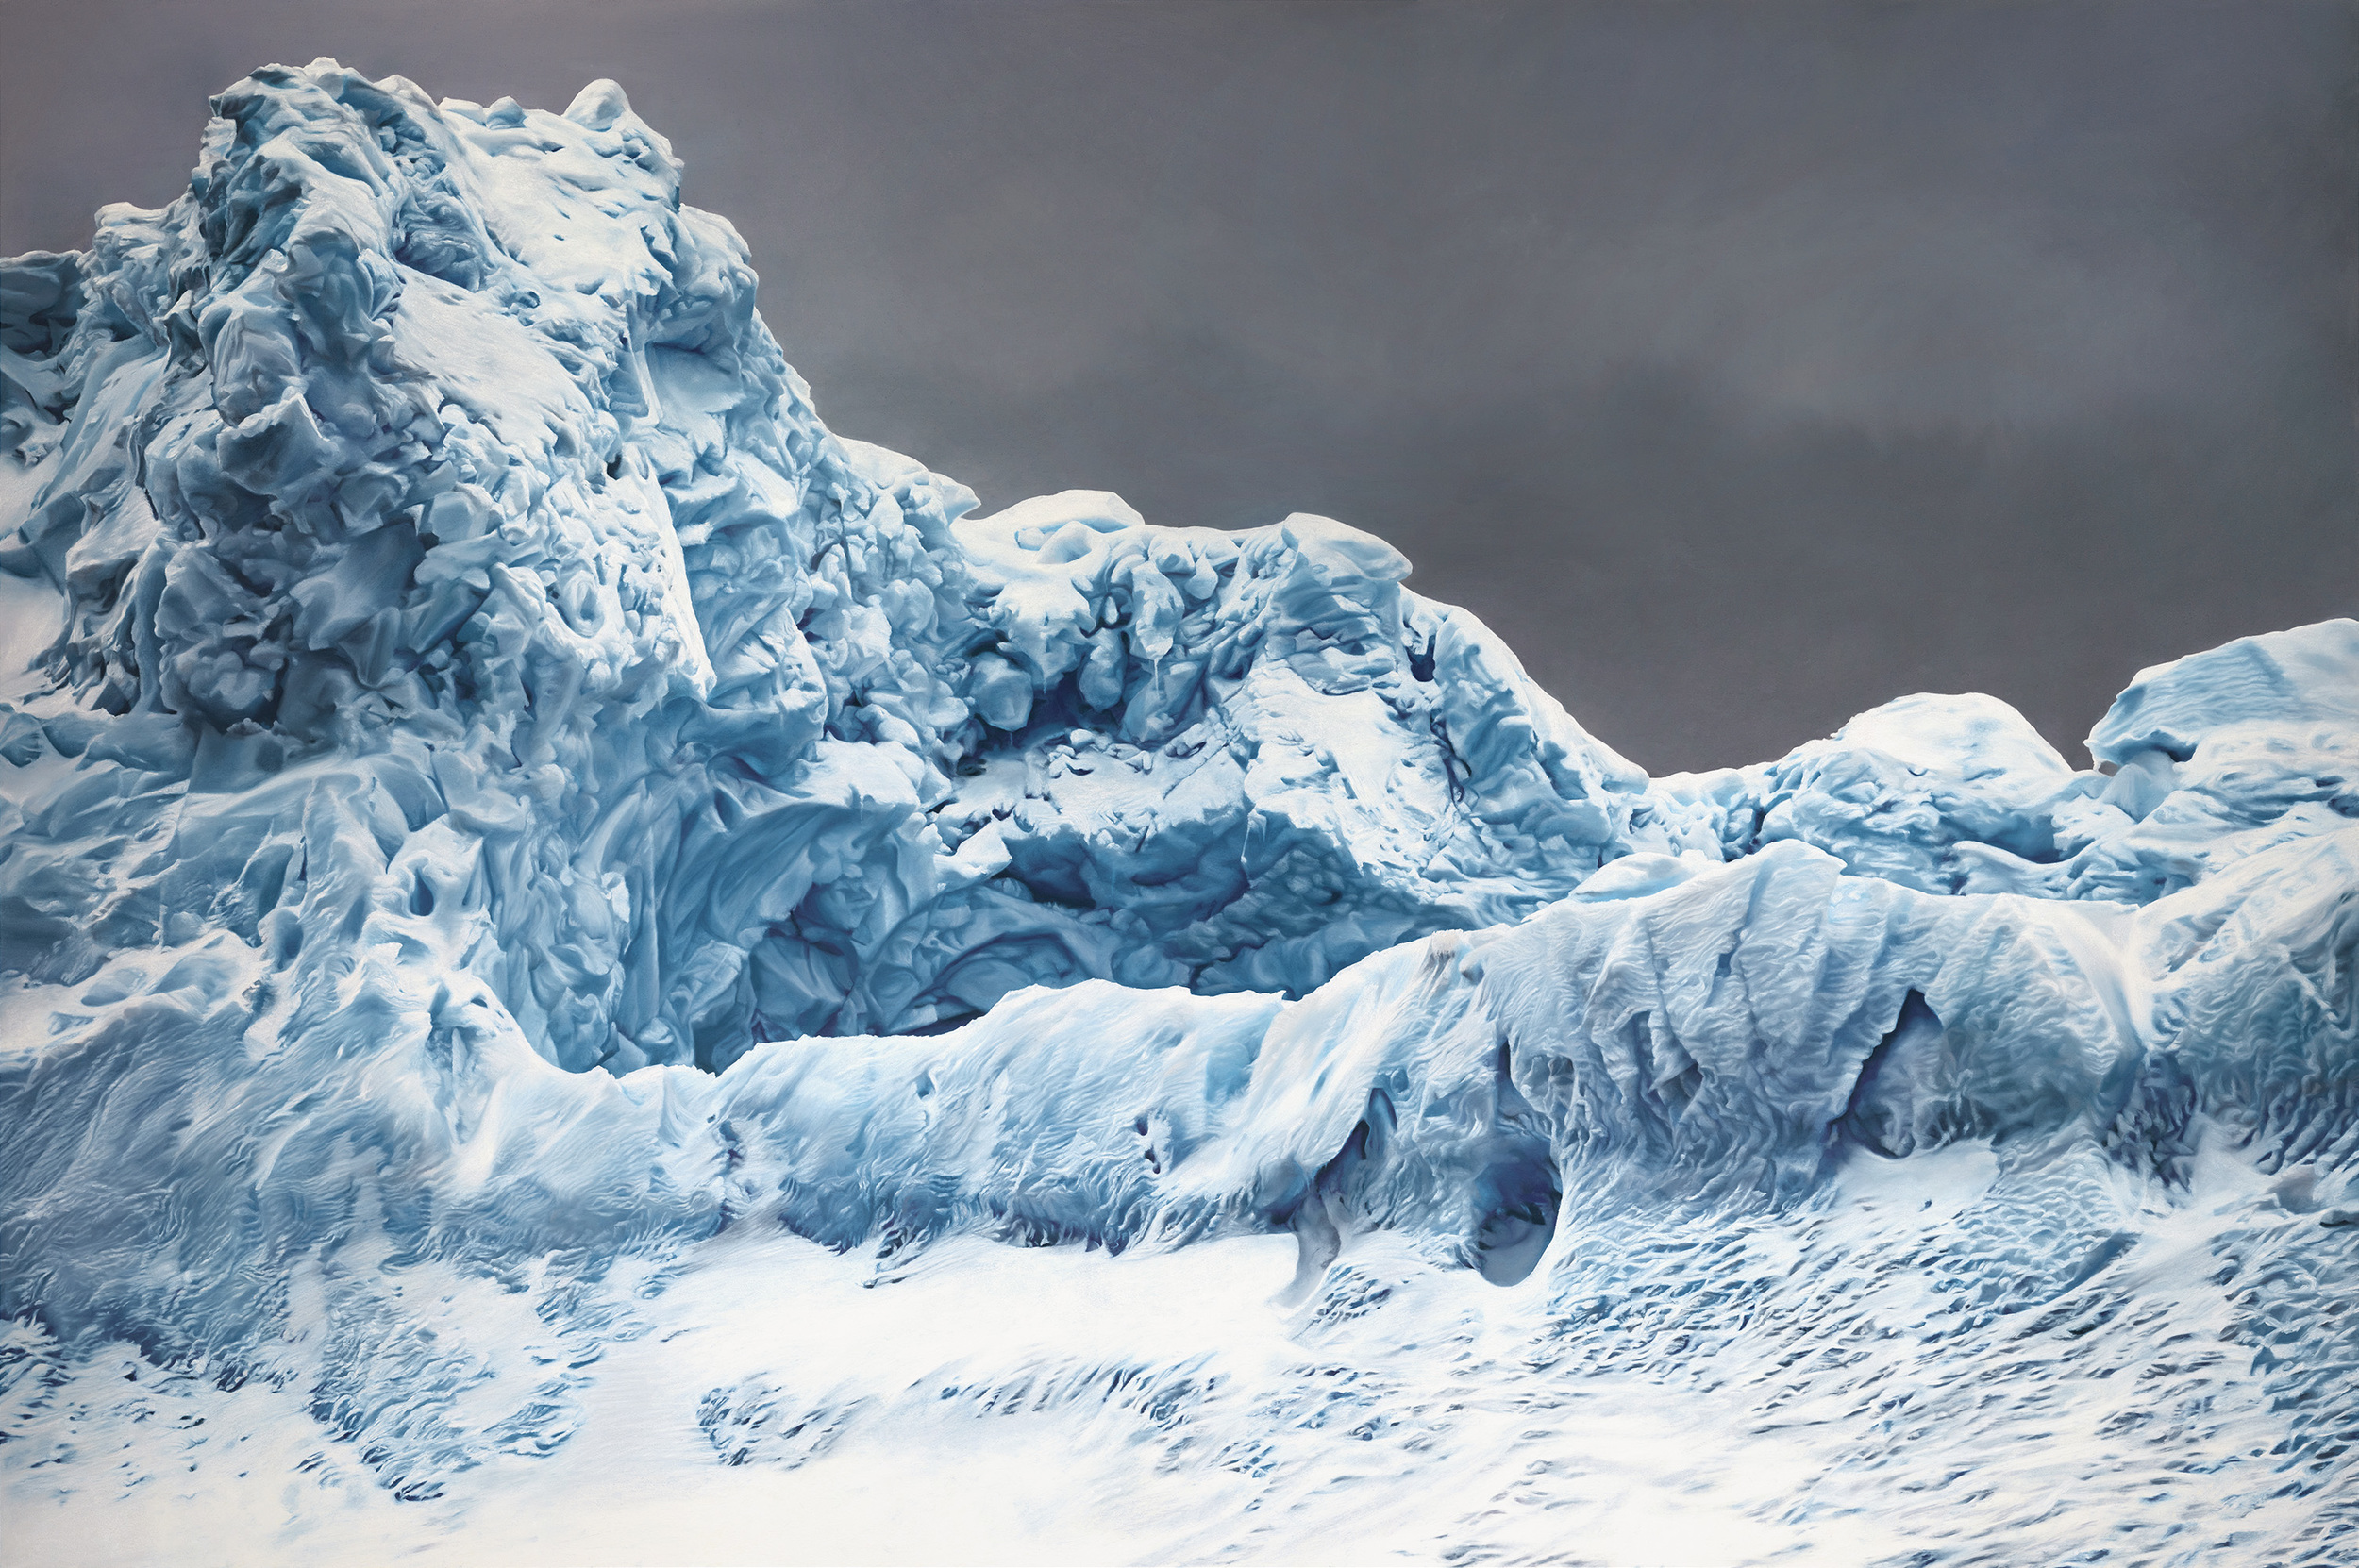 WHALE BAY, ANTARCTICA NO.1, 60 X 90 INCHES, SOFT PASTEL ON PAPER, 2016